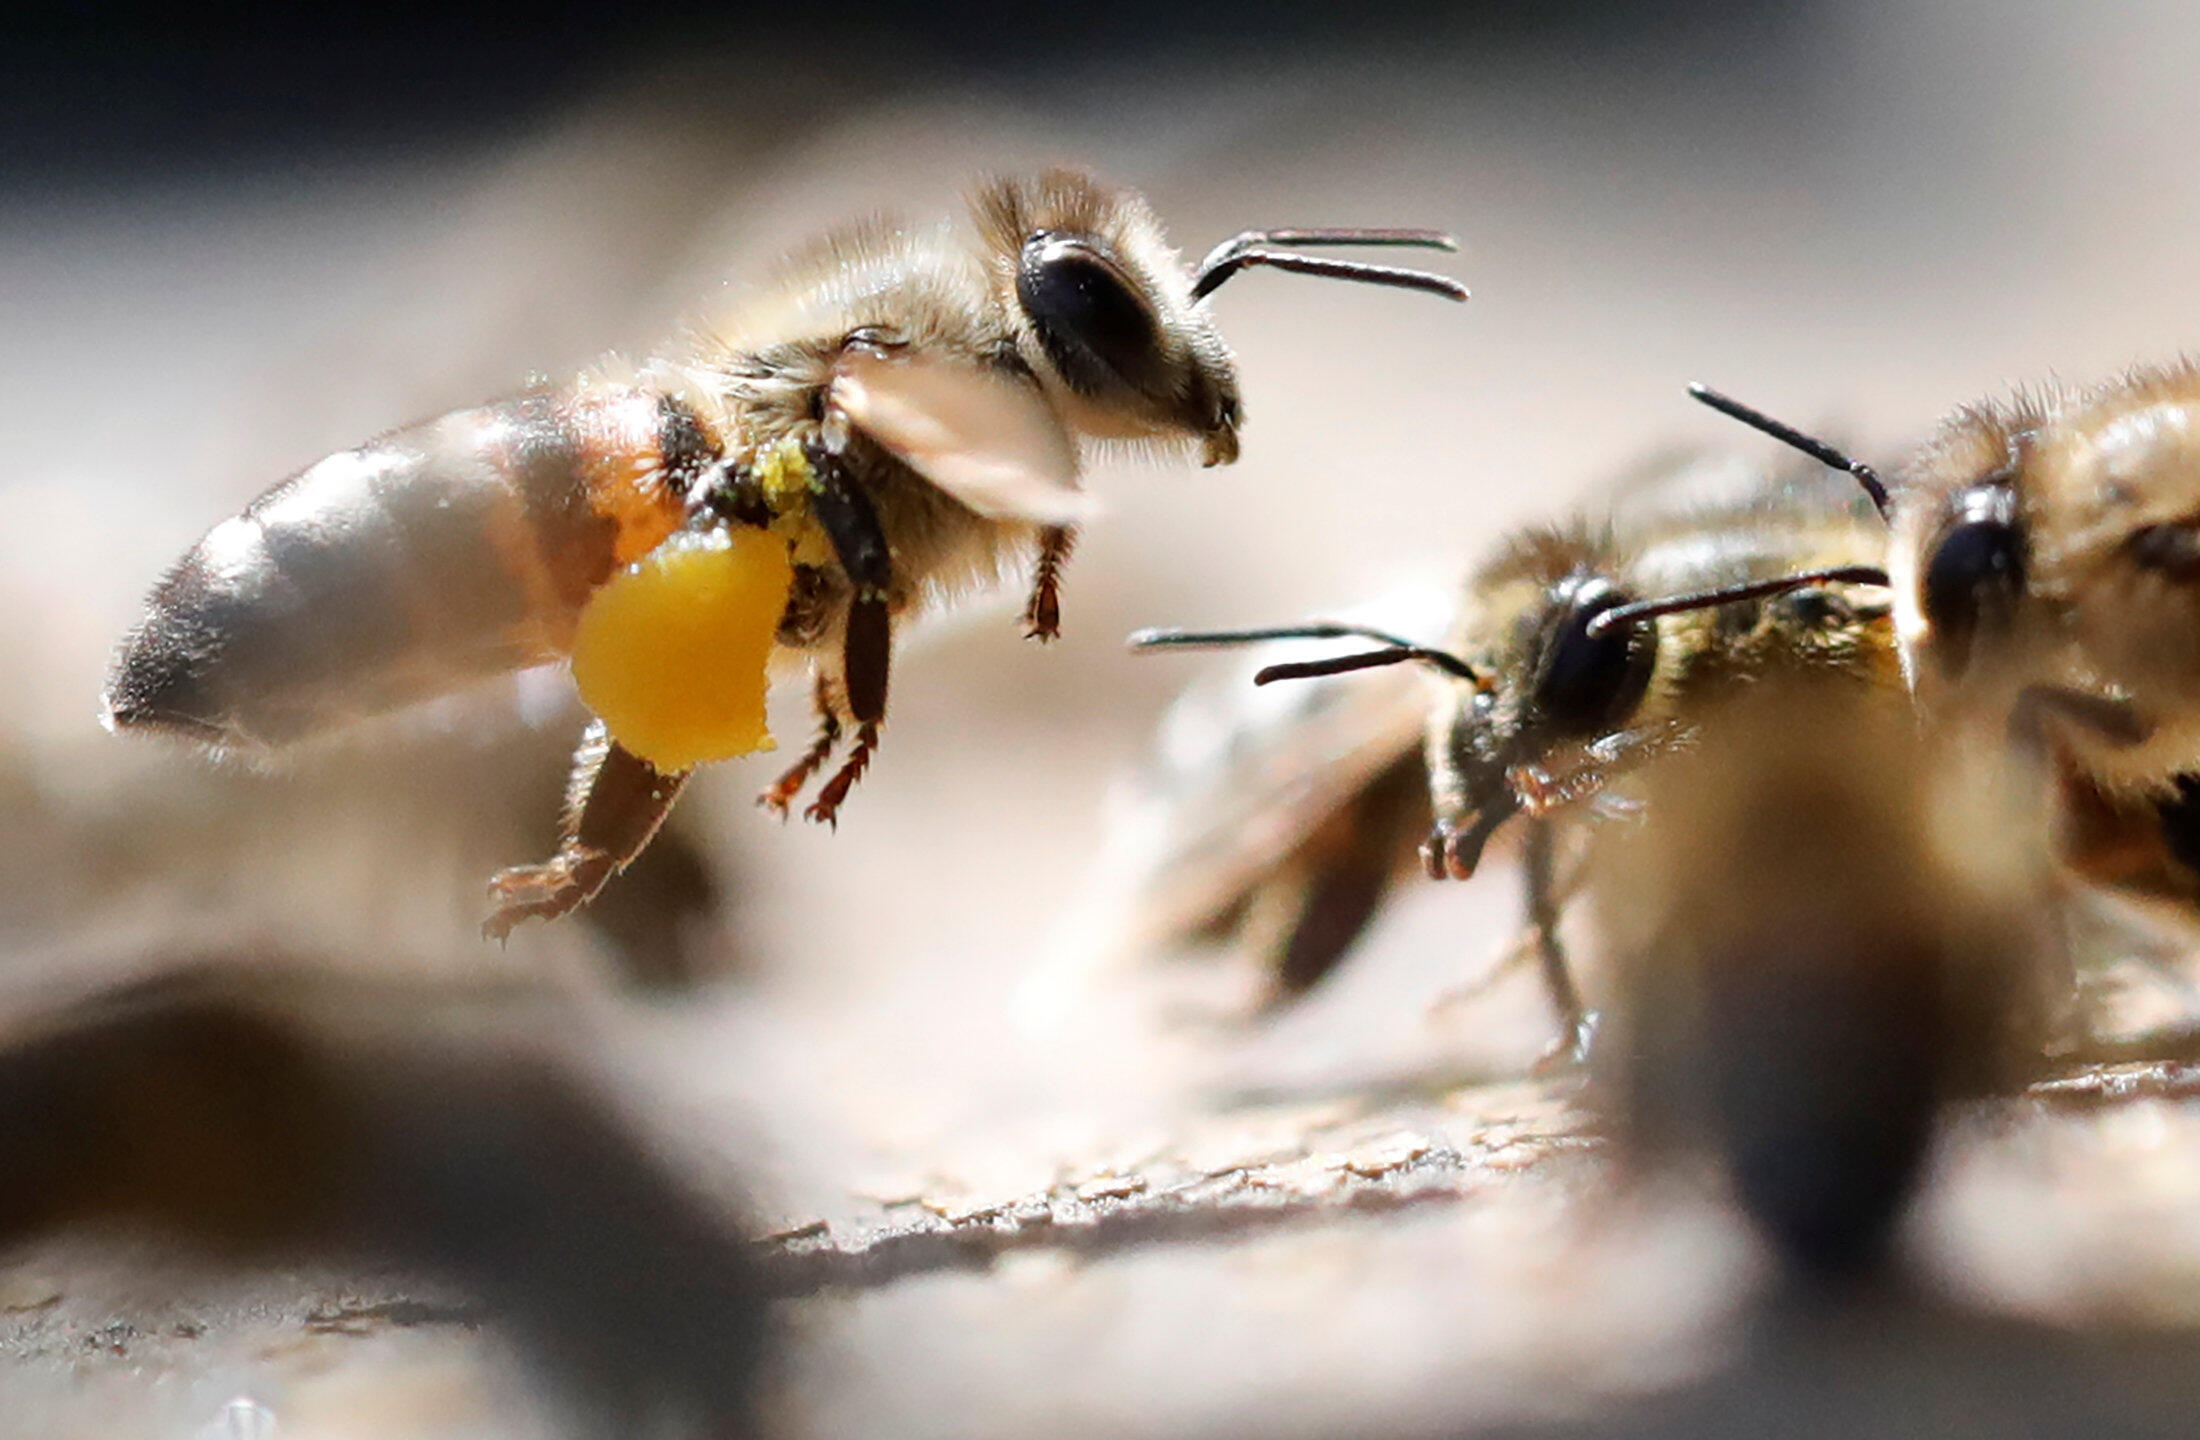 All in a day's work: a bee gets home with a takeaway.